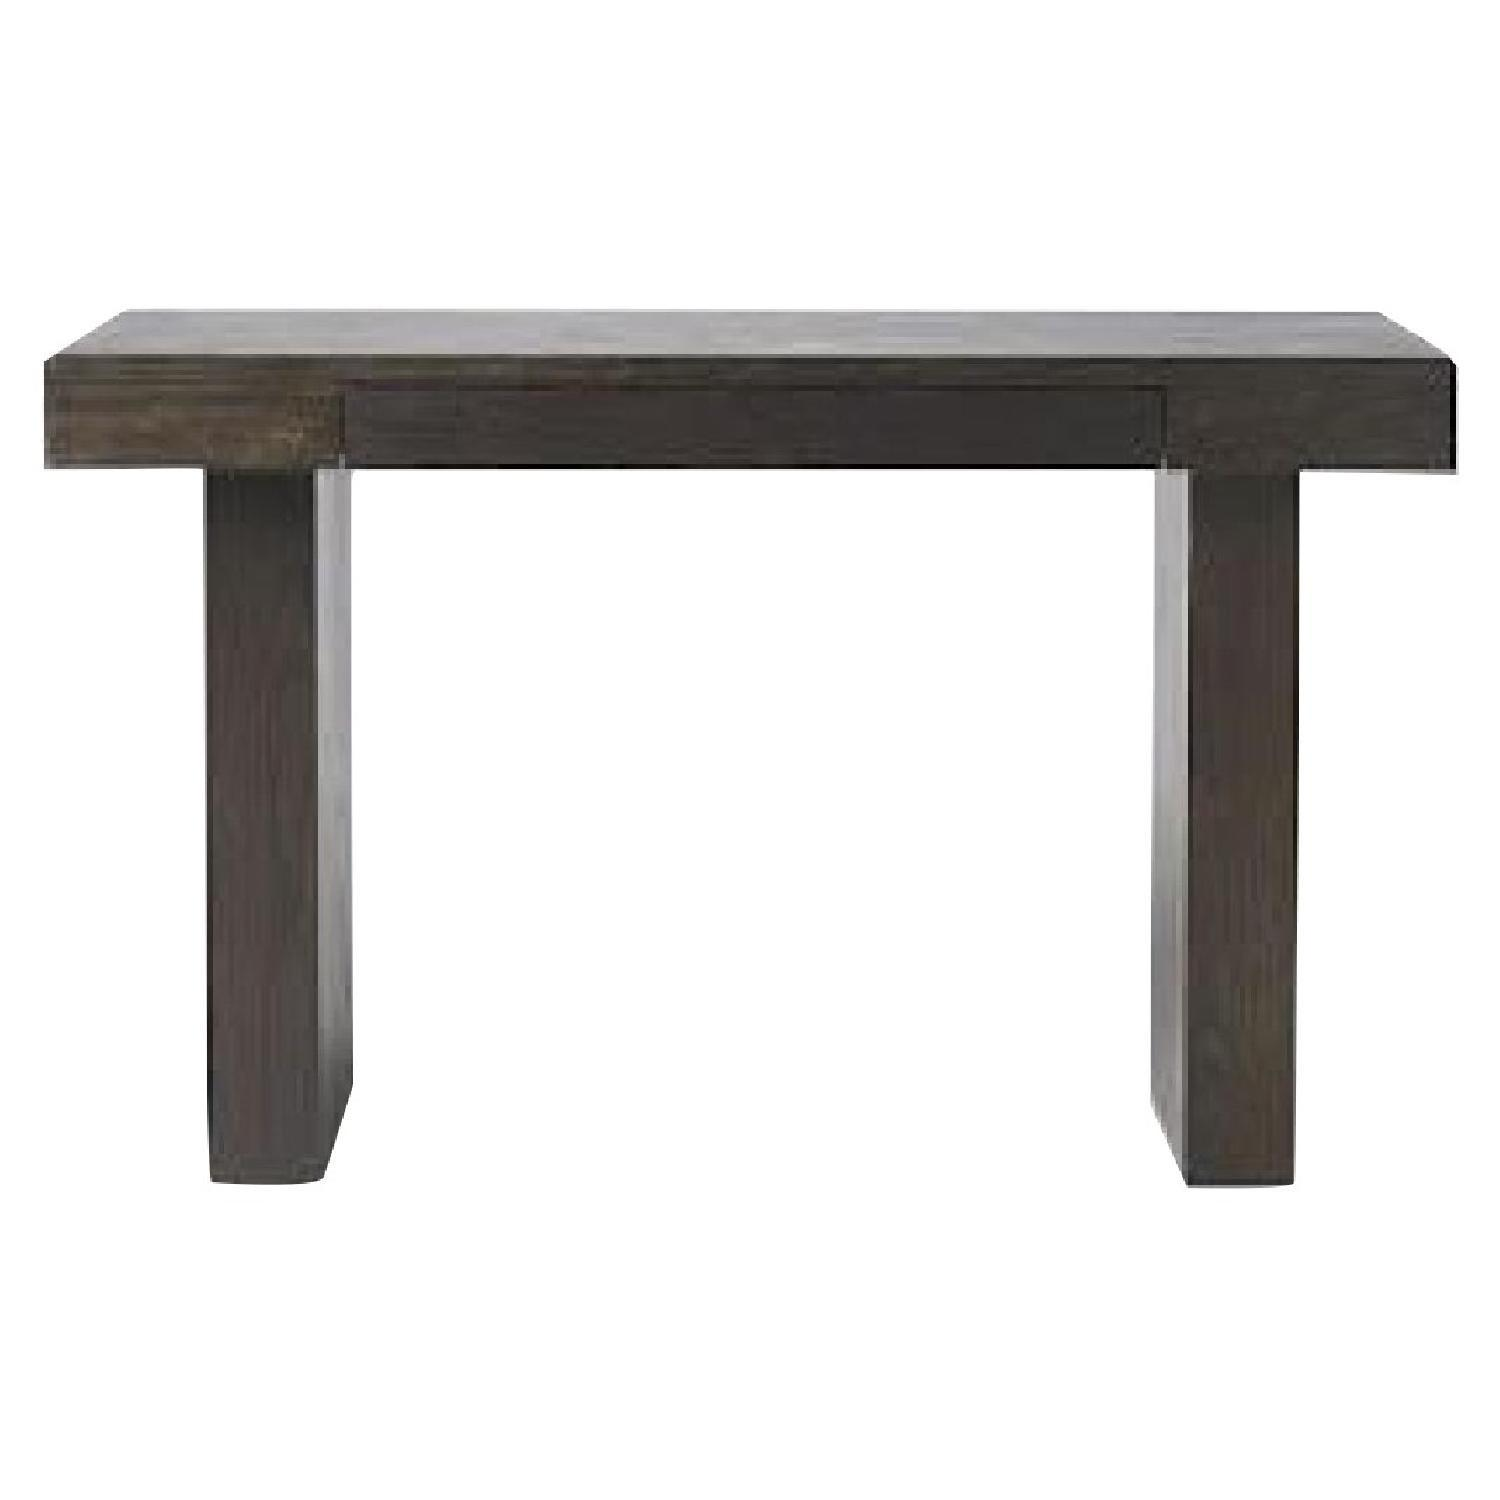 West Elm Terra Console in Chocolate - image-2